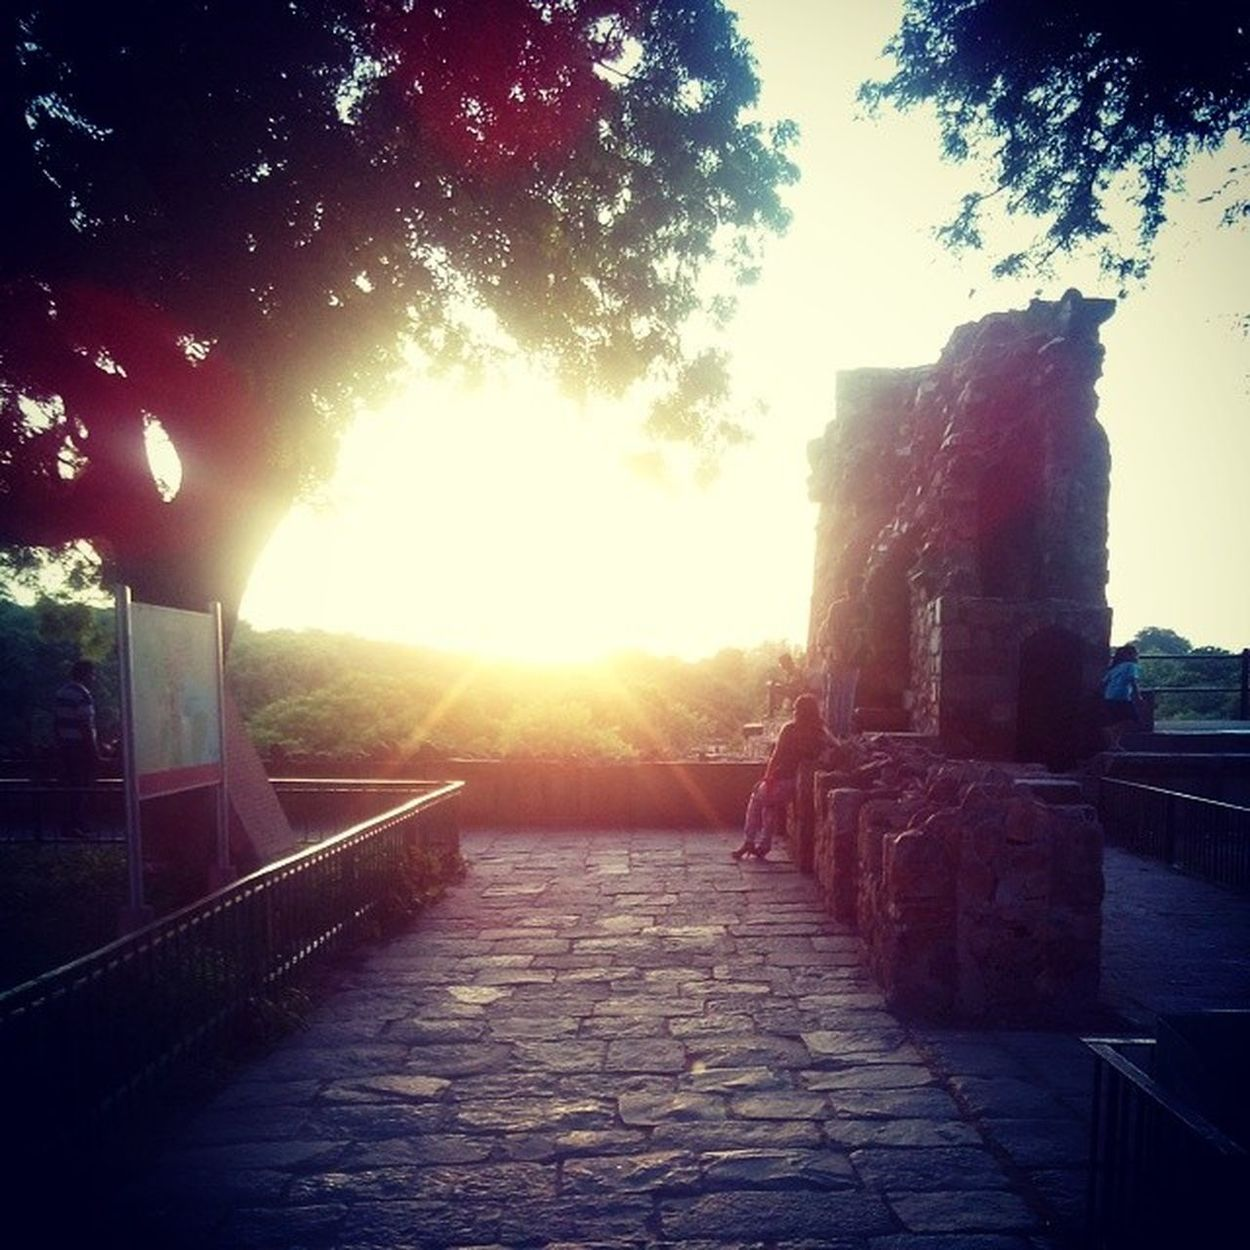 When you don't expect things Things like these happen. Hauzkhasfort